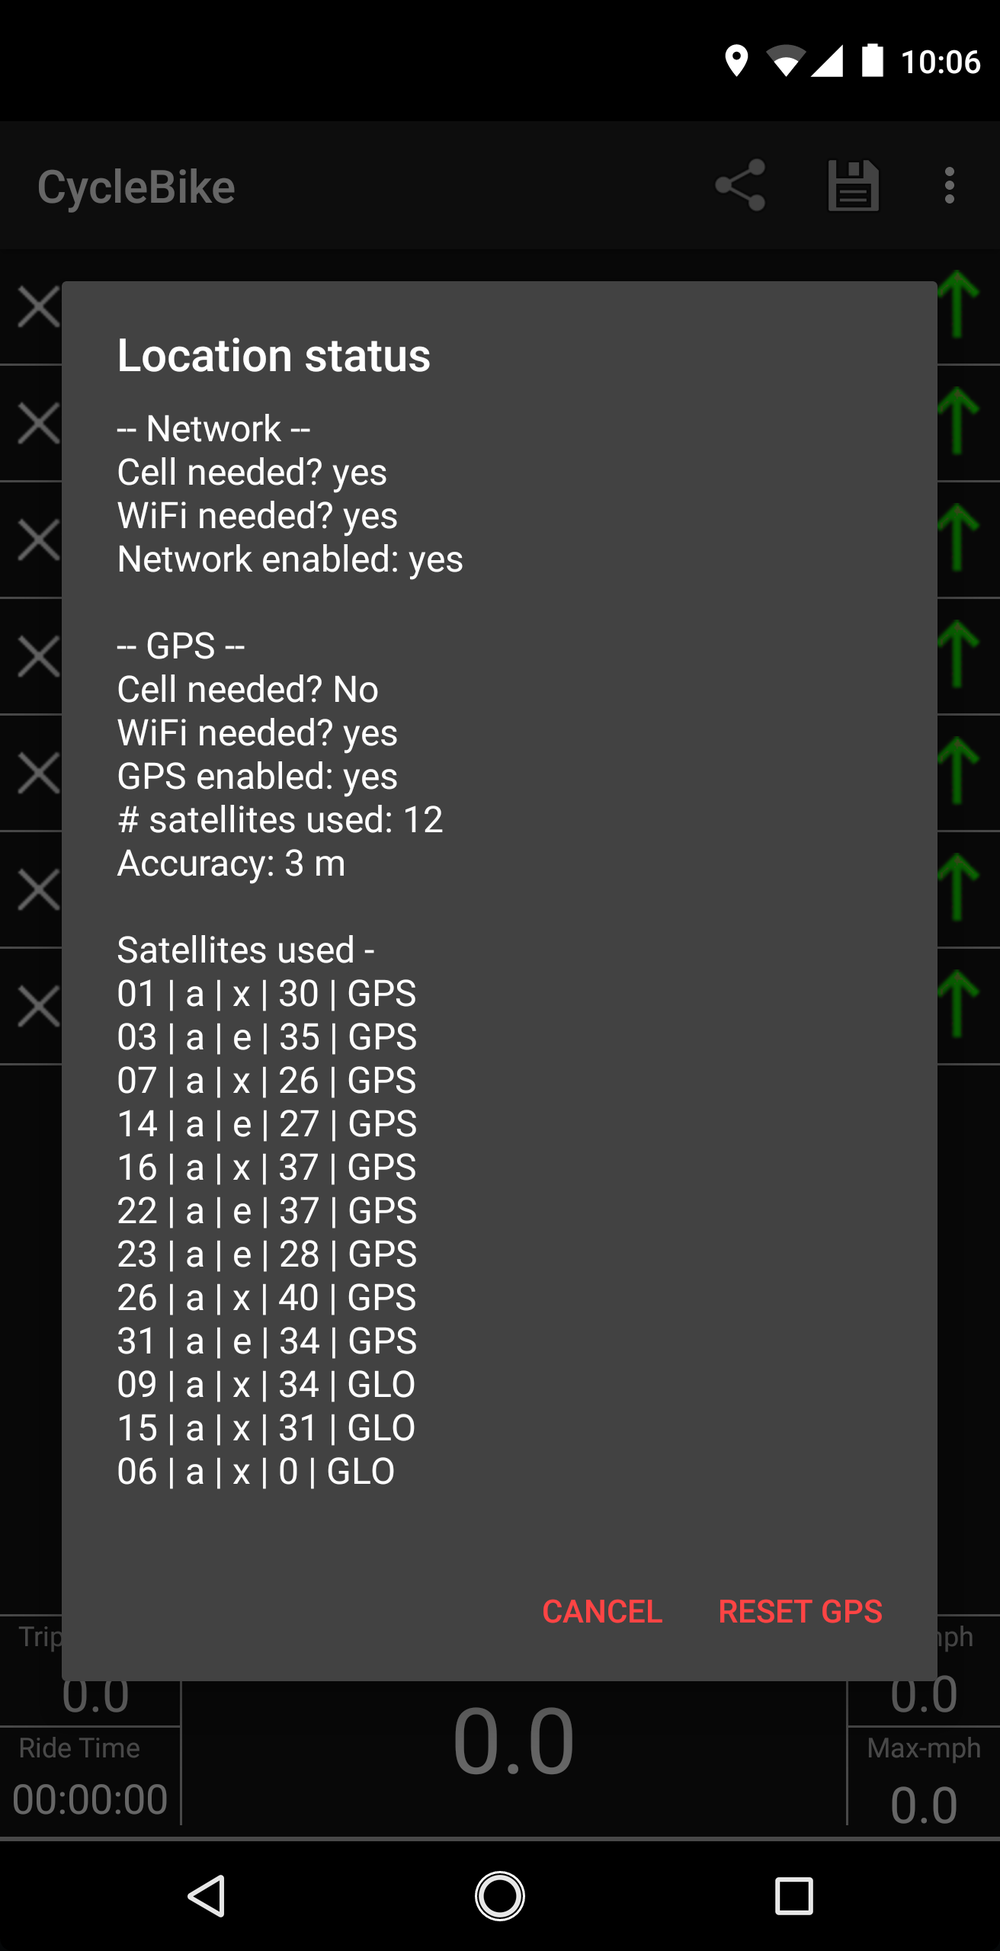 - GPS satellite status message showing #satellites used, location accuracy, satellite number,(a)lmanac updated, (e)phemeris updated, signal-to-noise ratio, and satellite type. The reset button may help acquire satellites faster.